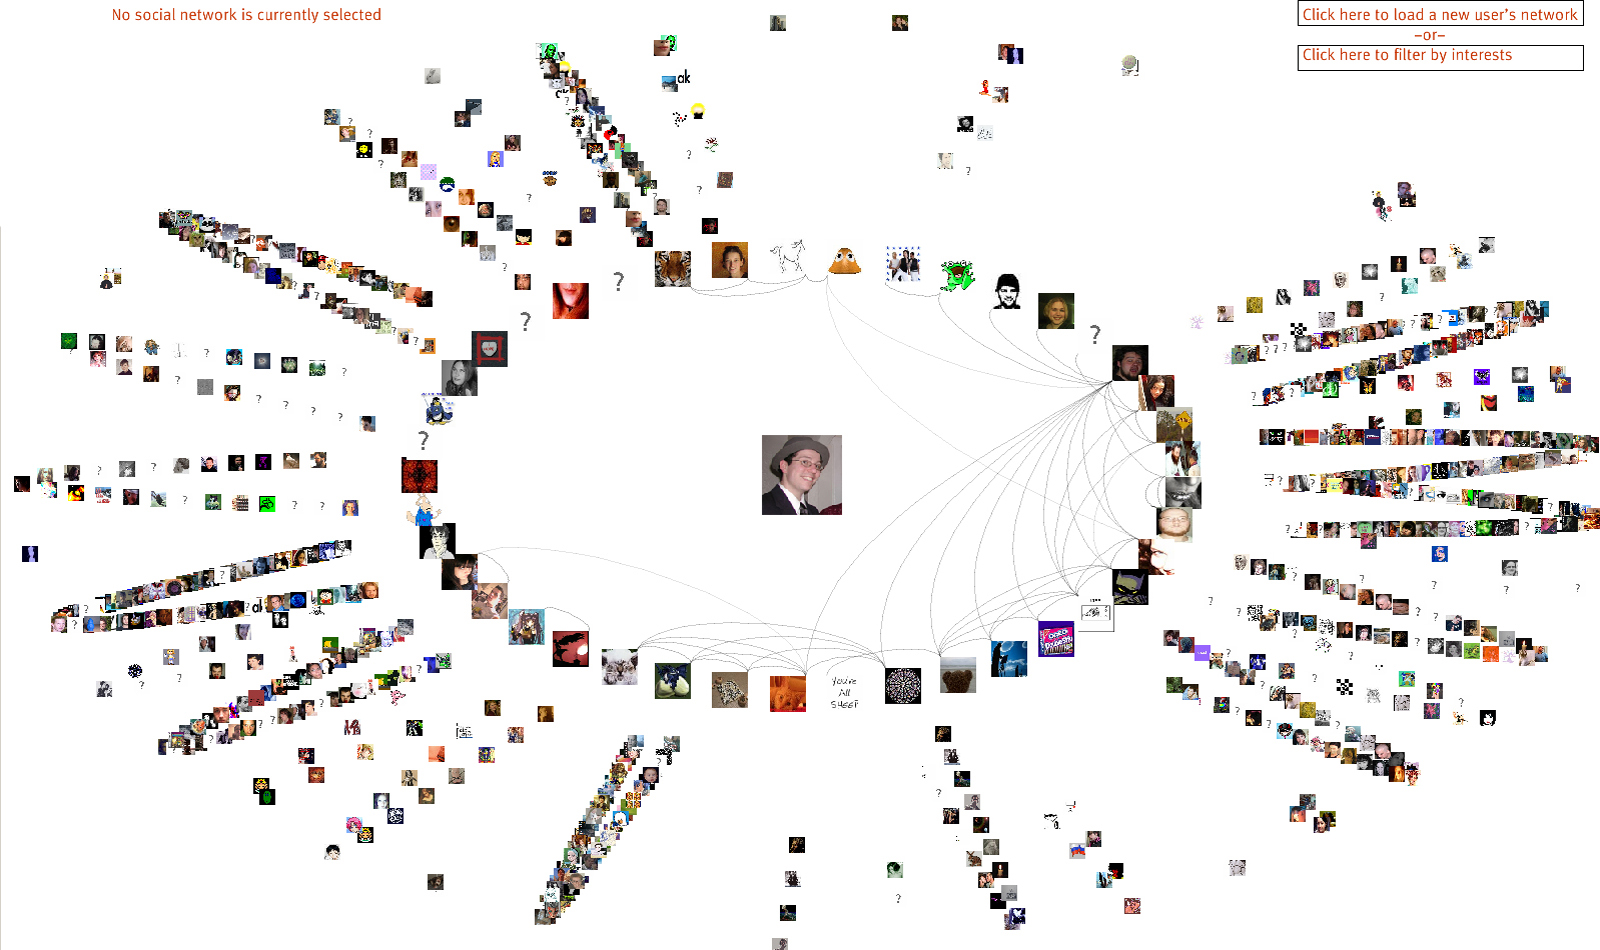 LJNet - LiveJournal Social Network Visualization